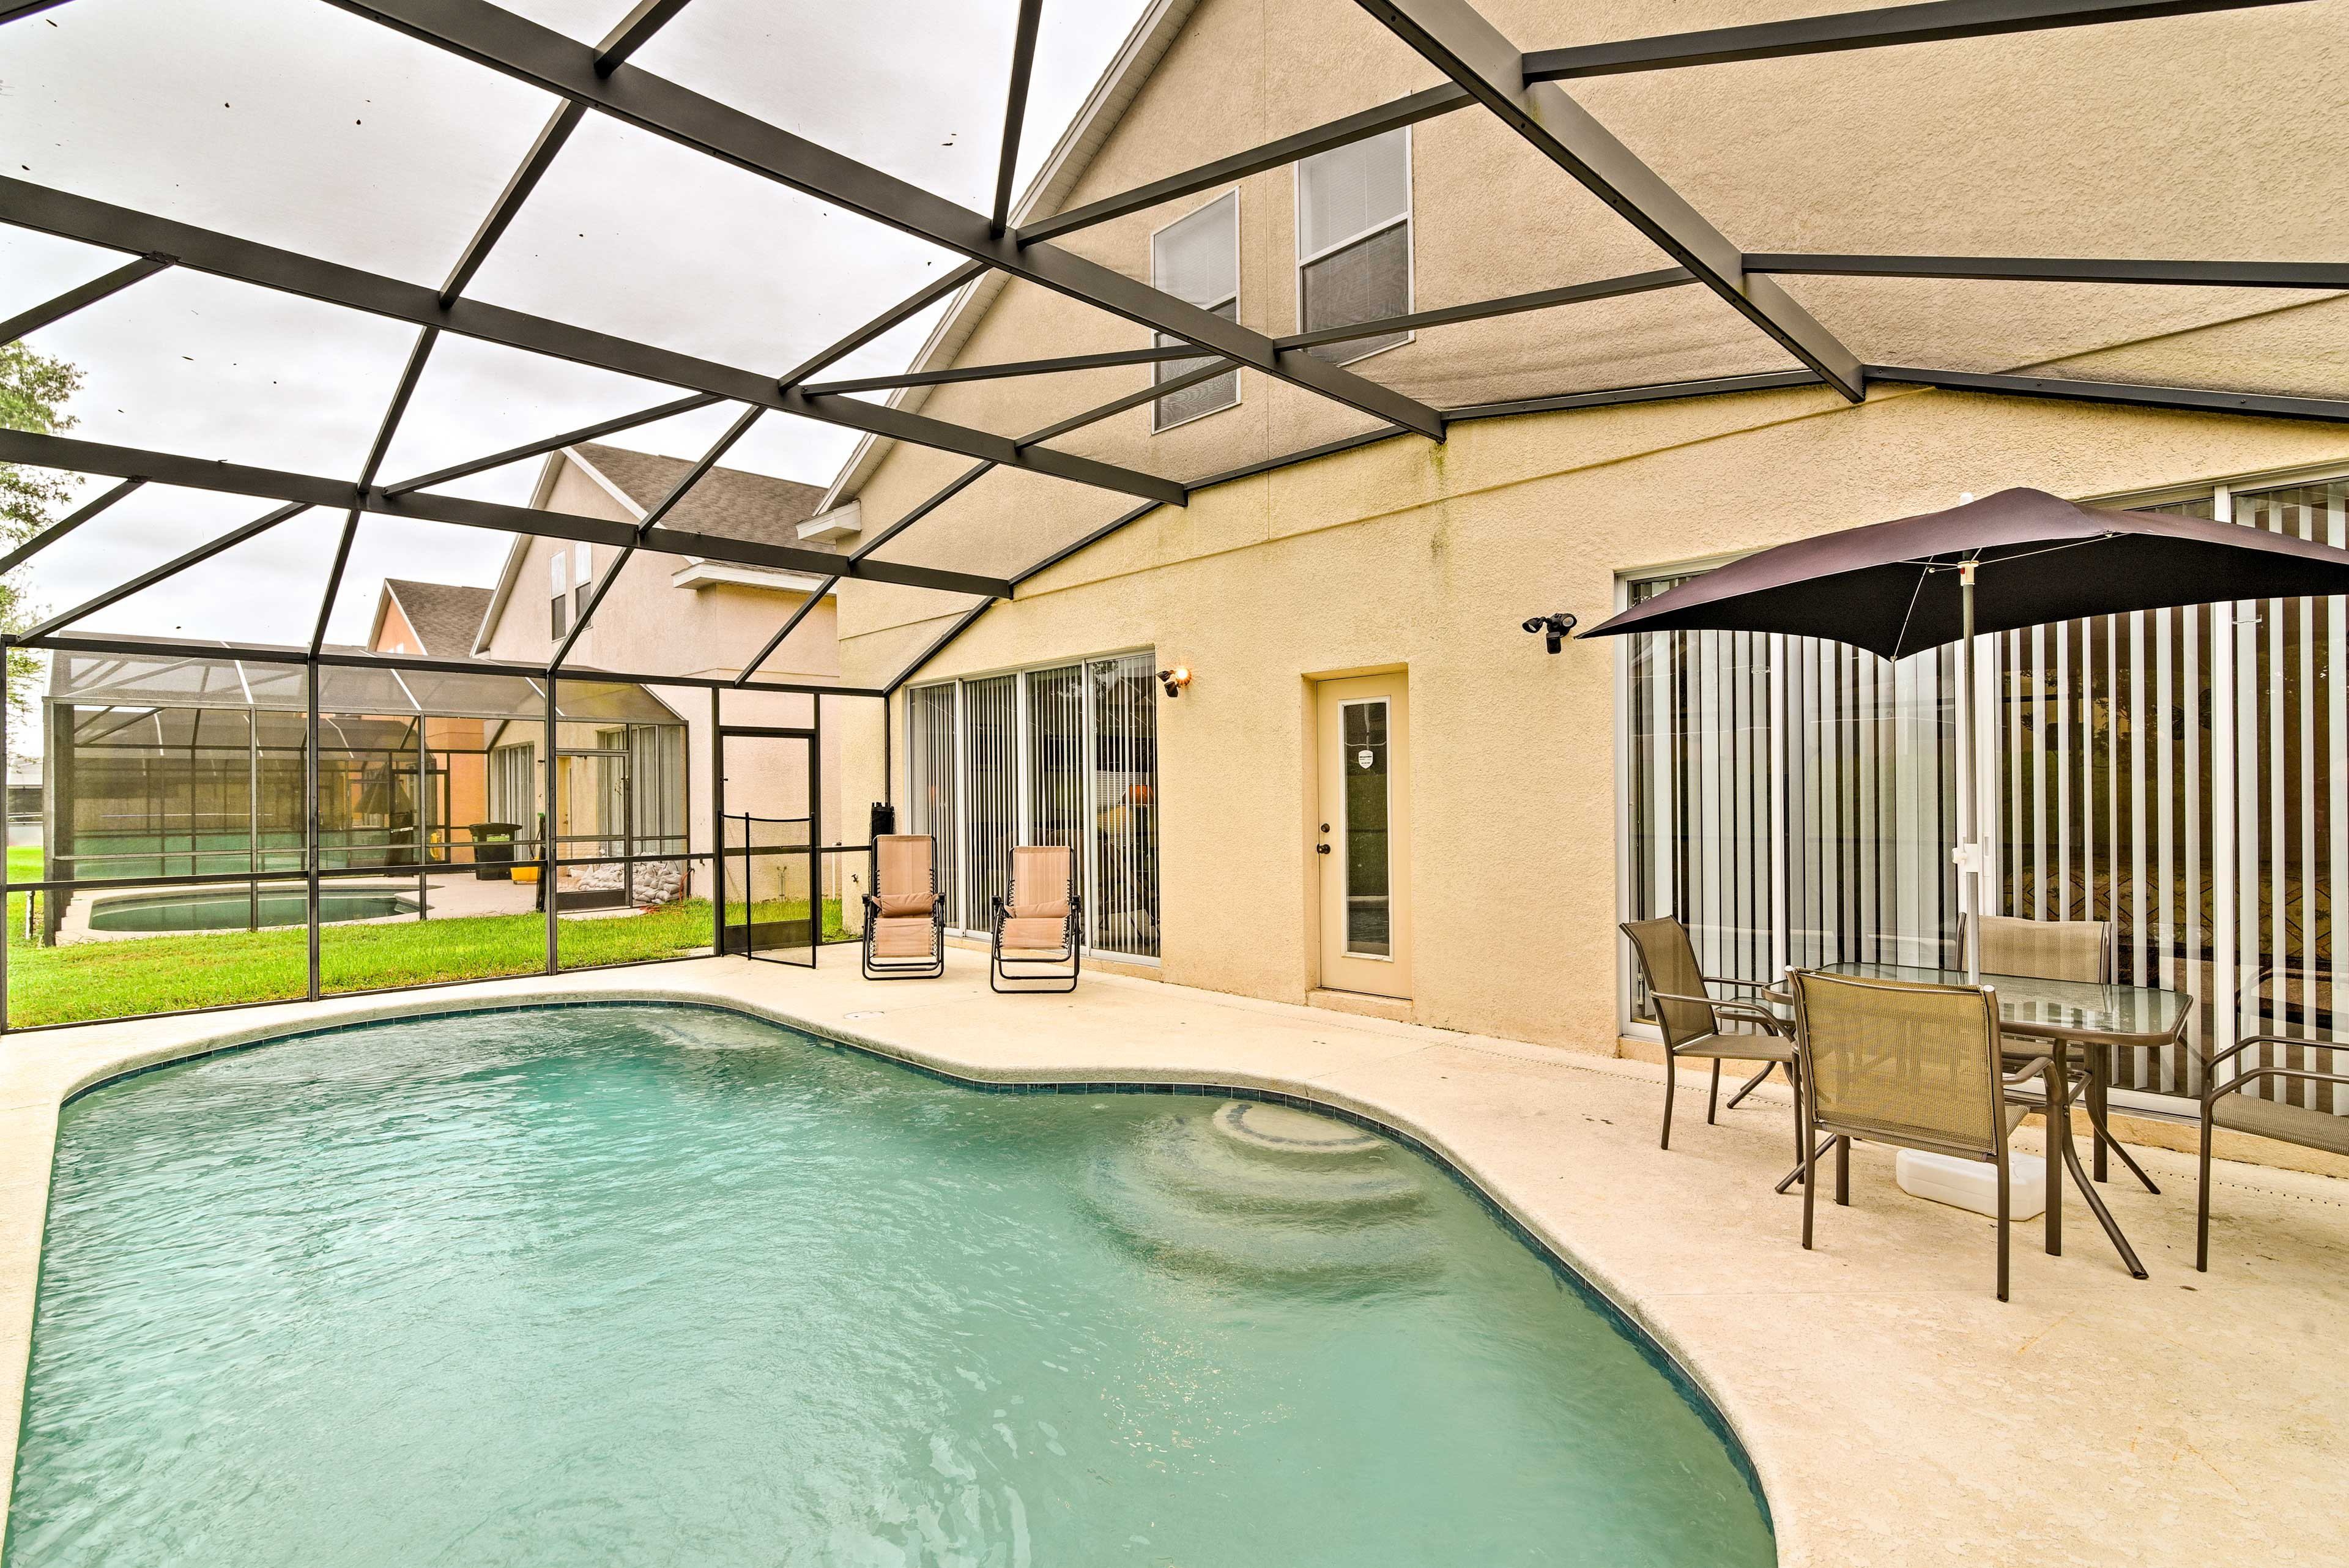 Book this 5BR, 3-bath vacation rental home in Davenport for your Disney getaway.